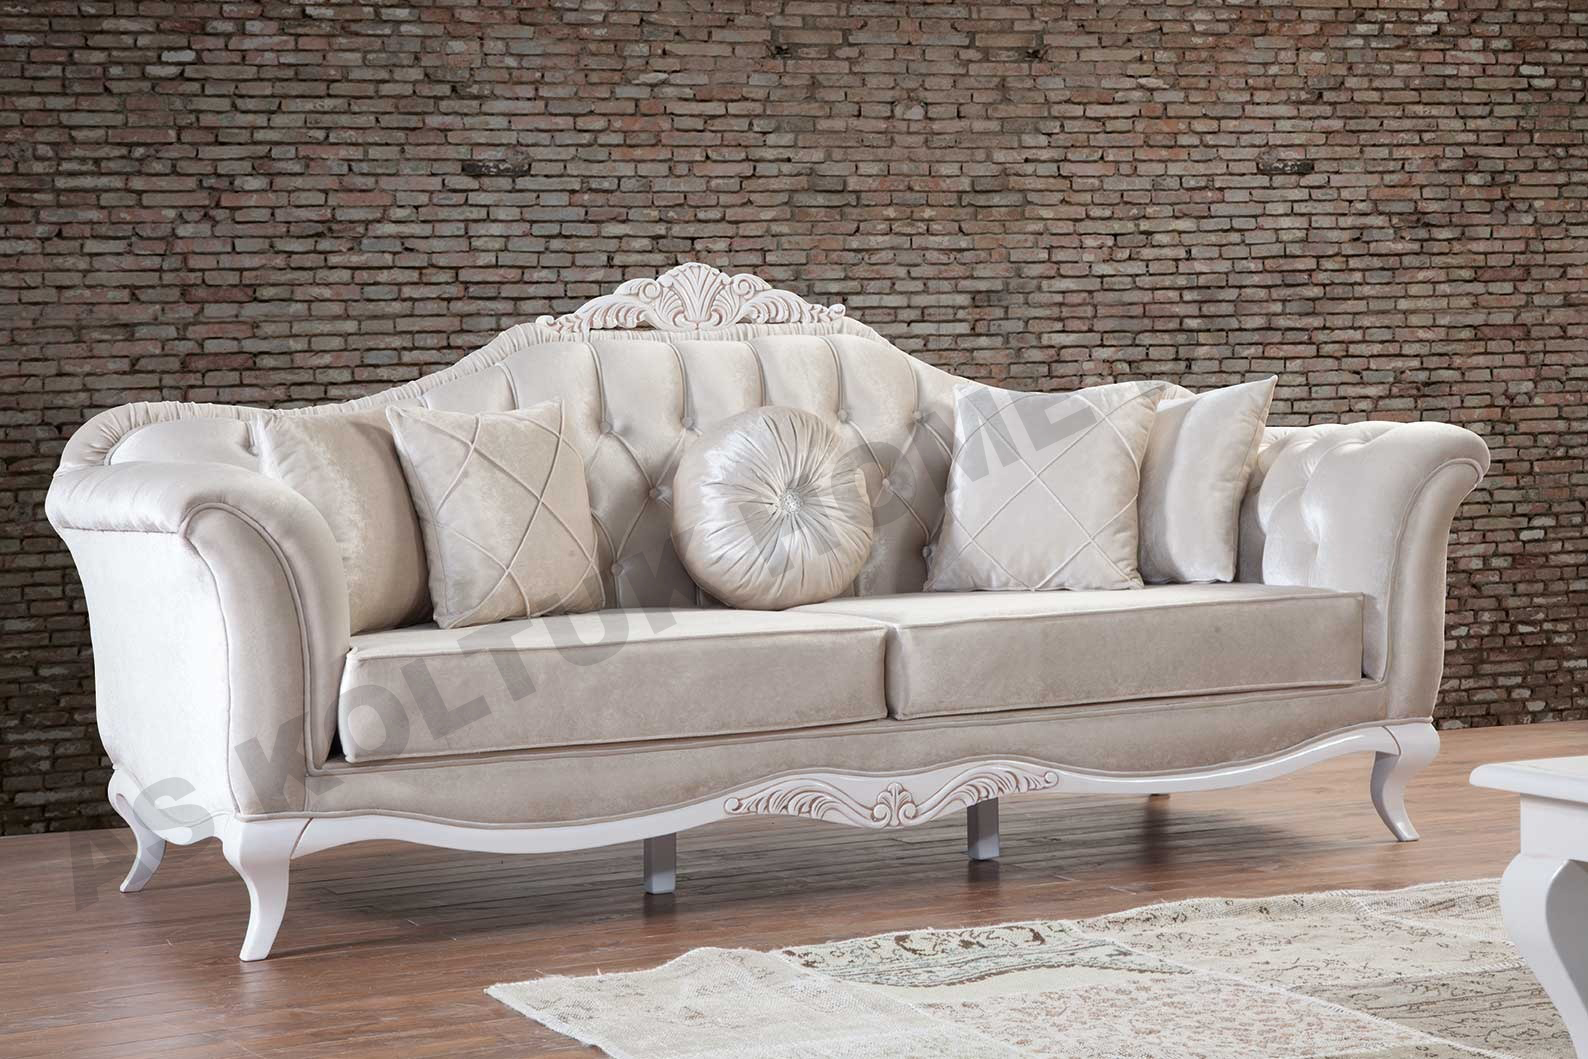 For Sale Brand New Elegant Broken White Sofa Set With Classic Design And  White Wood Legs Made In Turkey With High Quality Materials.